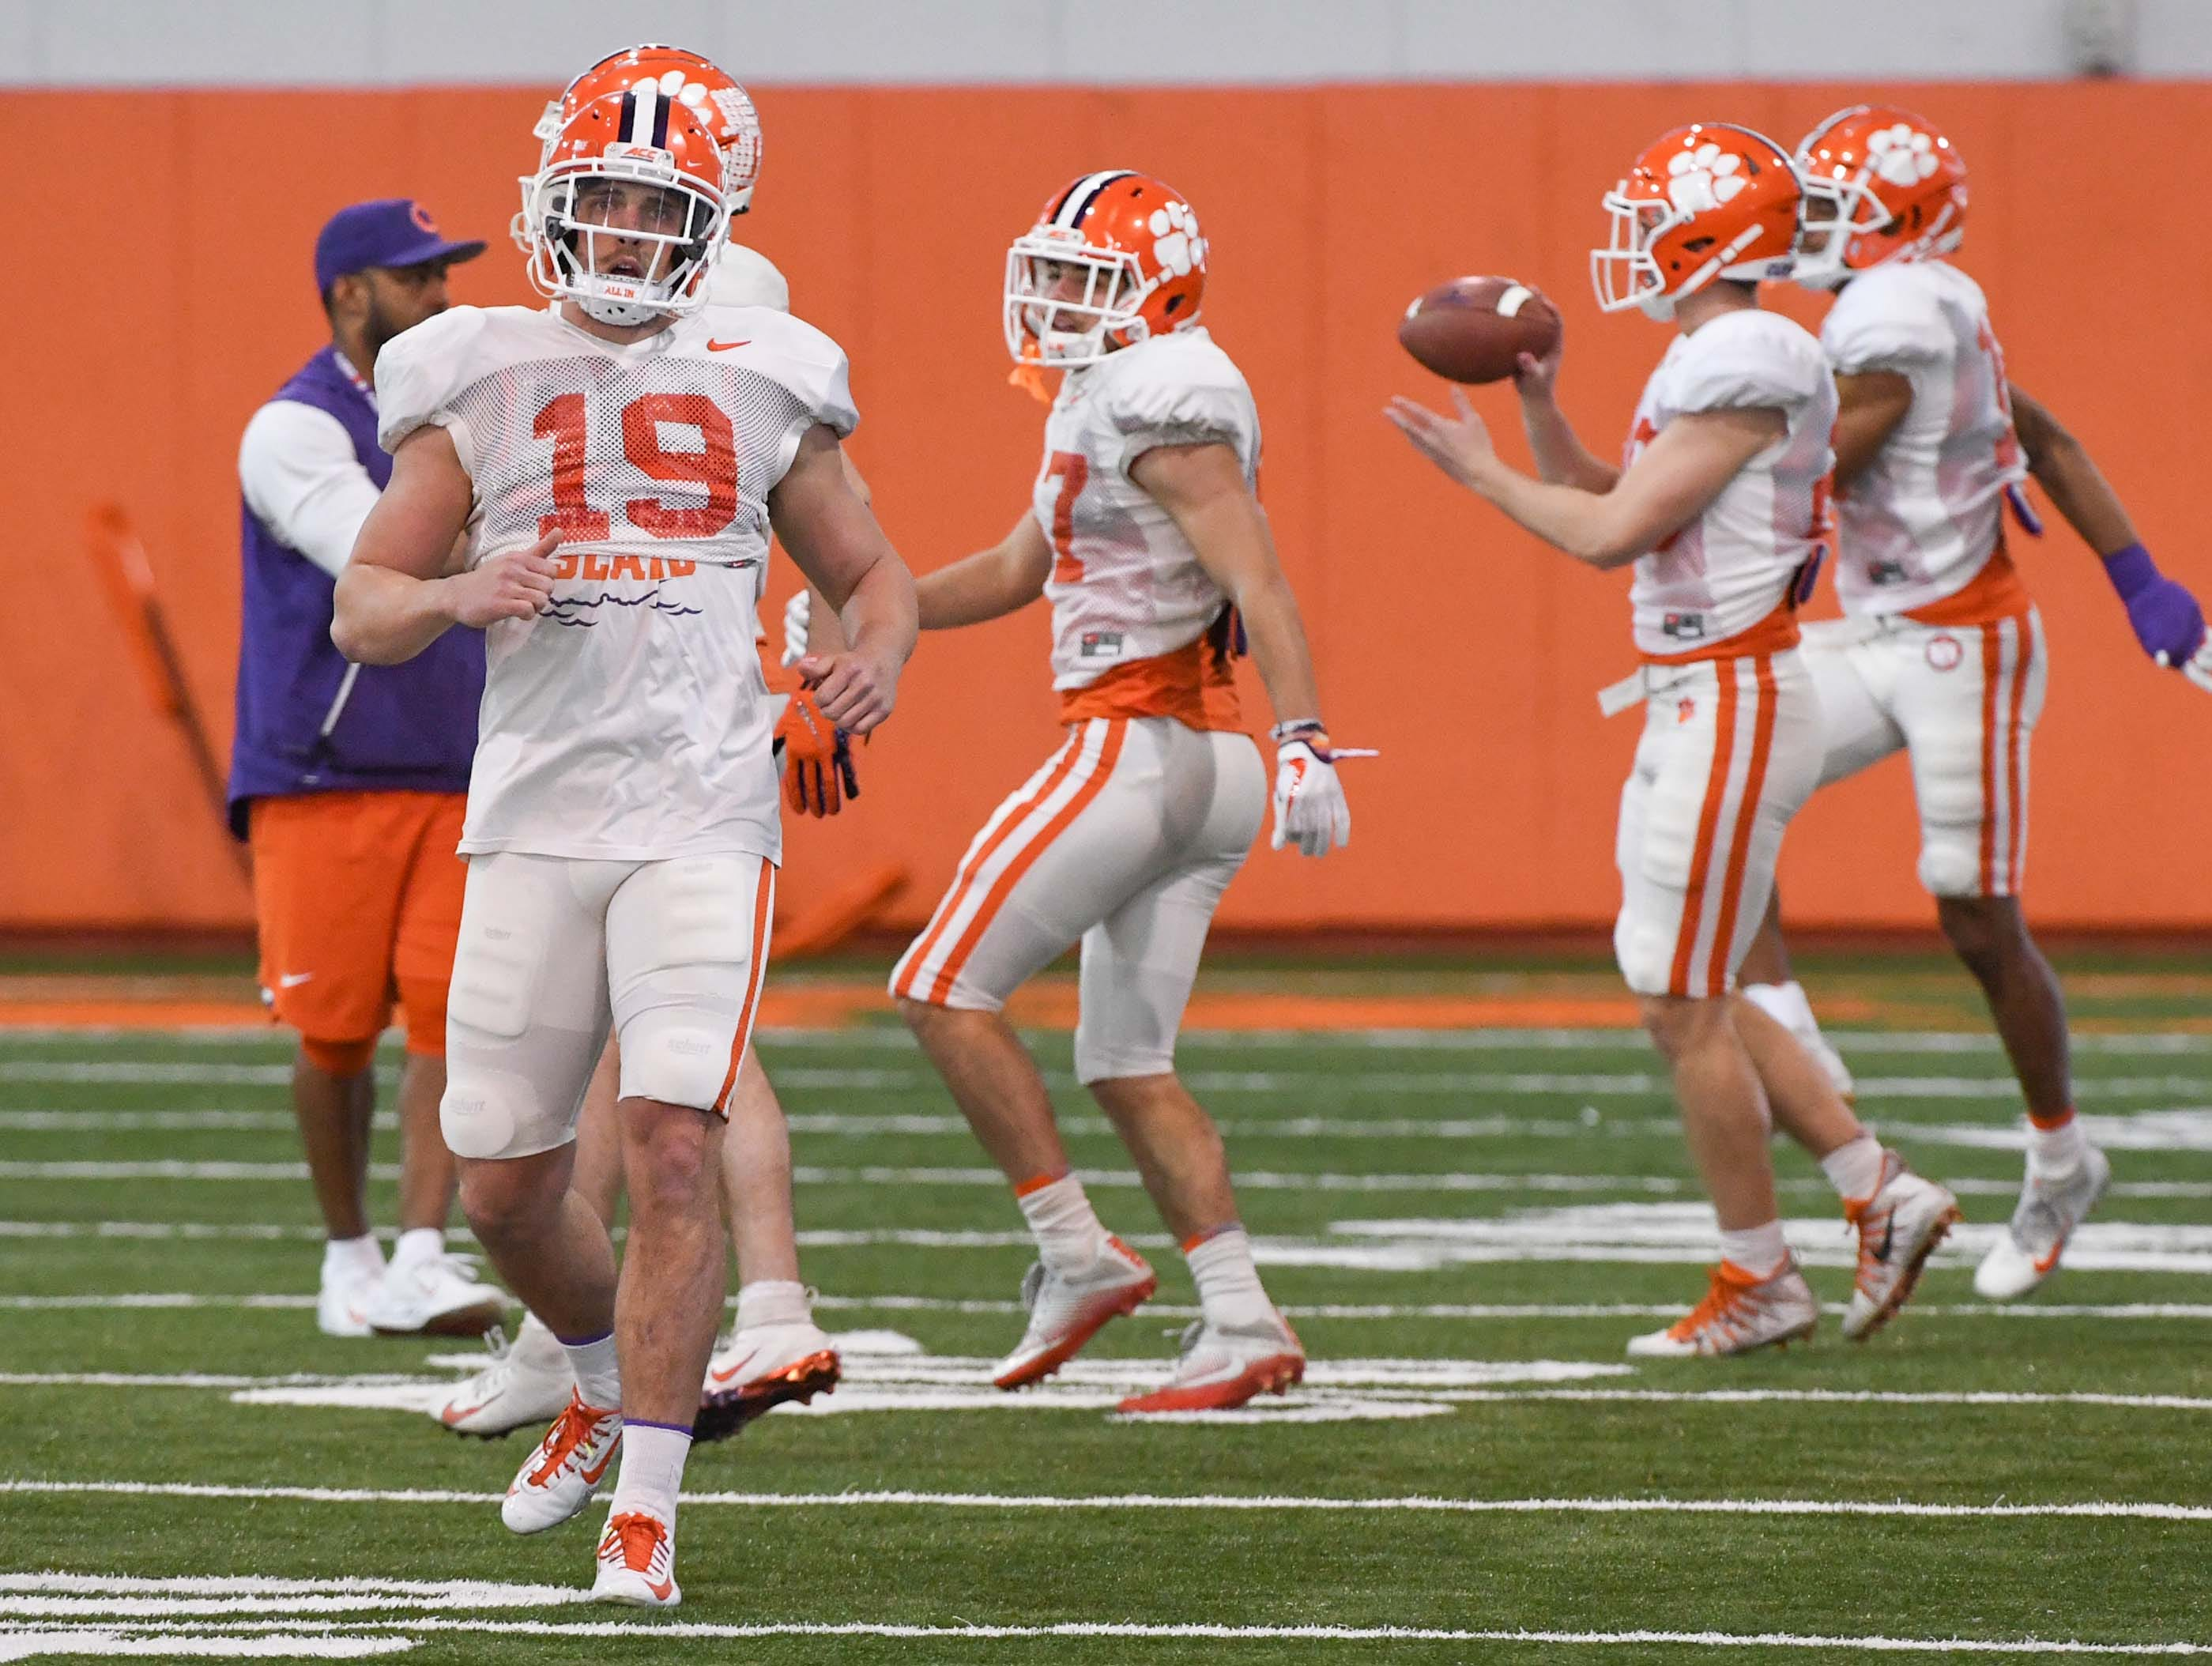 Clemson defensive back Tanner Muse (19) runs during practice at the Poe Indoor Facility in Clemson Monday.